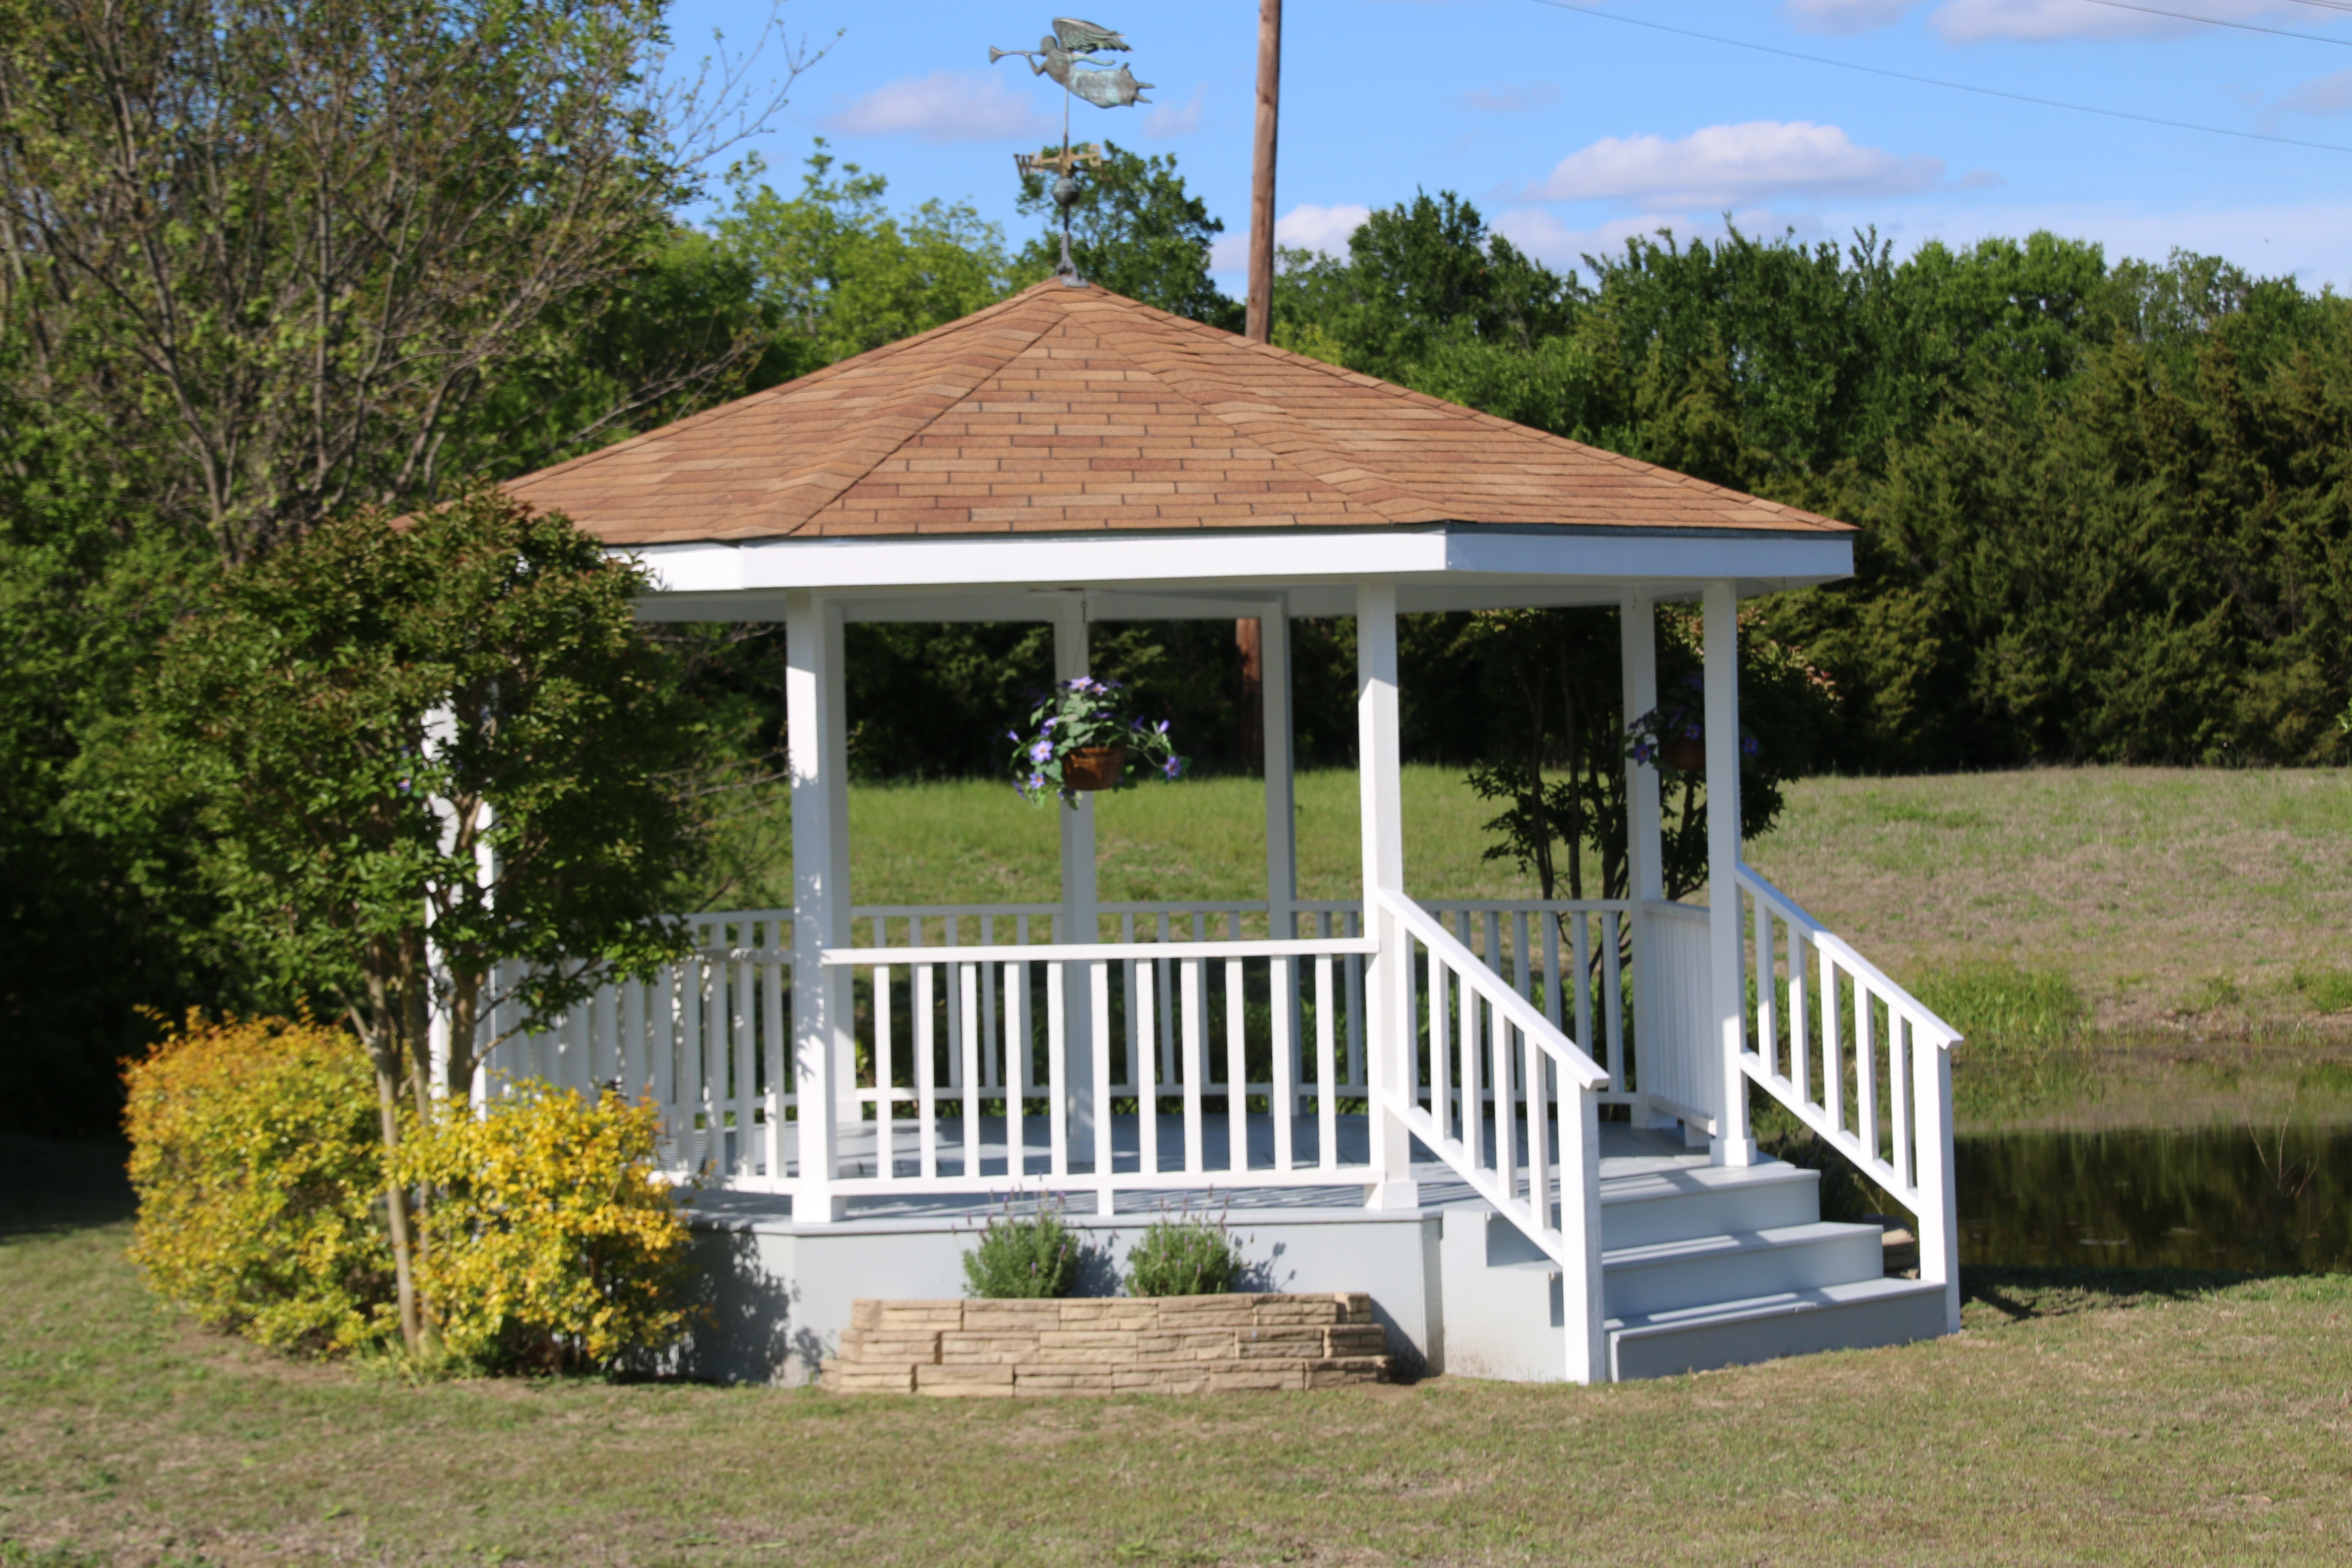 https://0201.nccdn.net/1_2/000/000/0eb/e25/new-row-2-gazebo-4.JPG